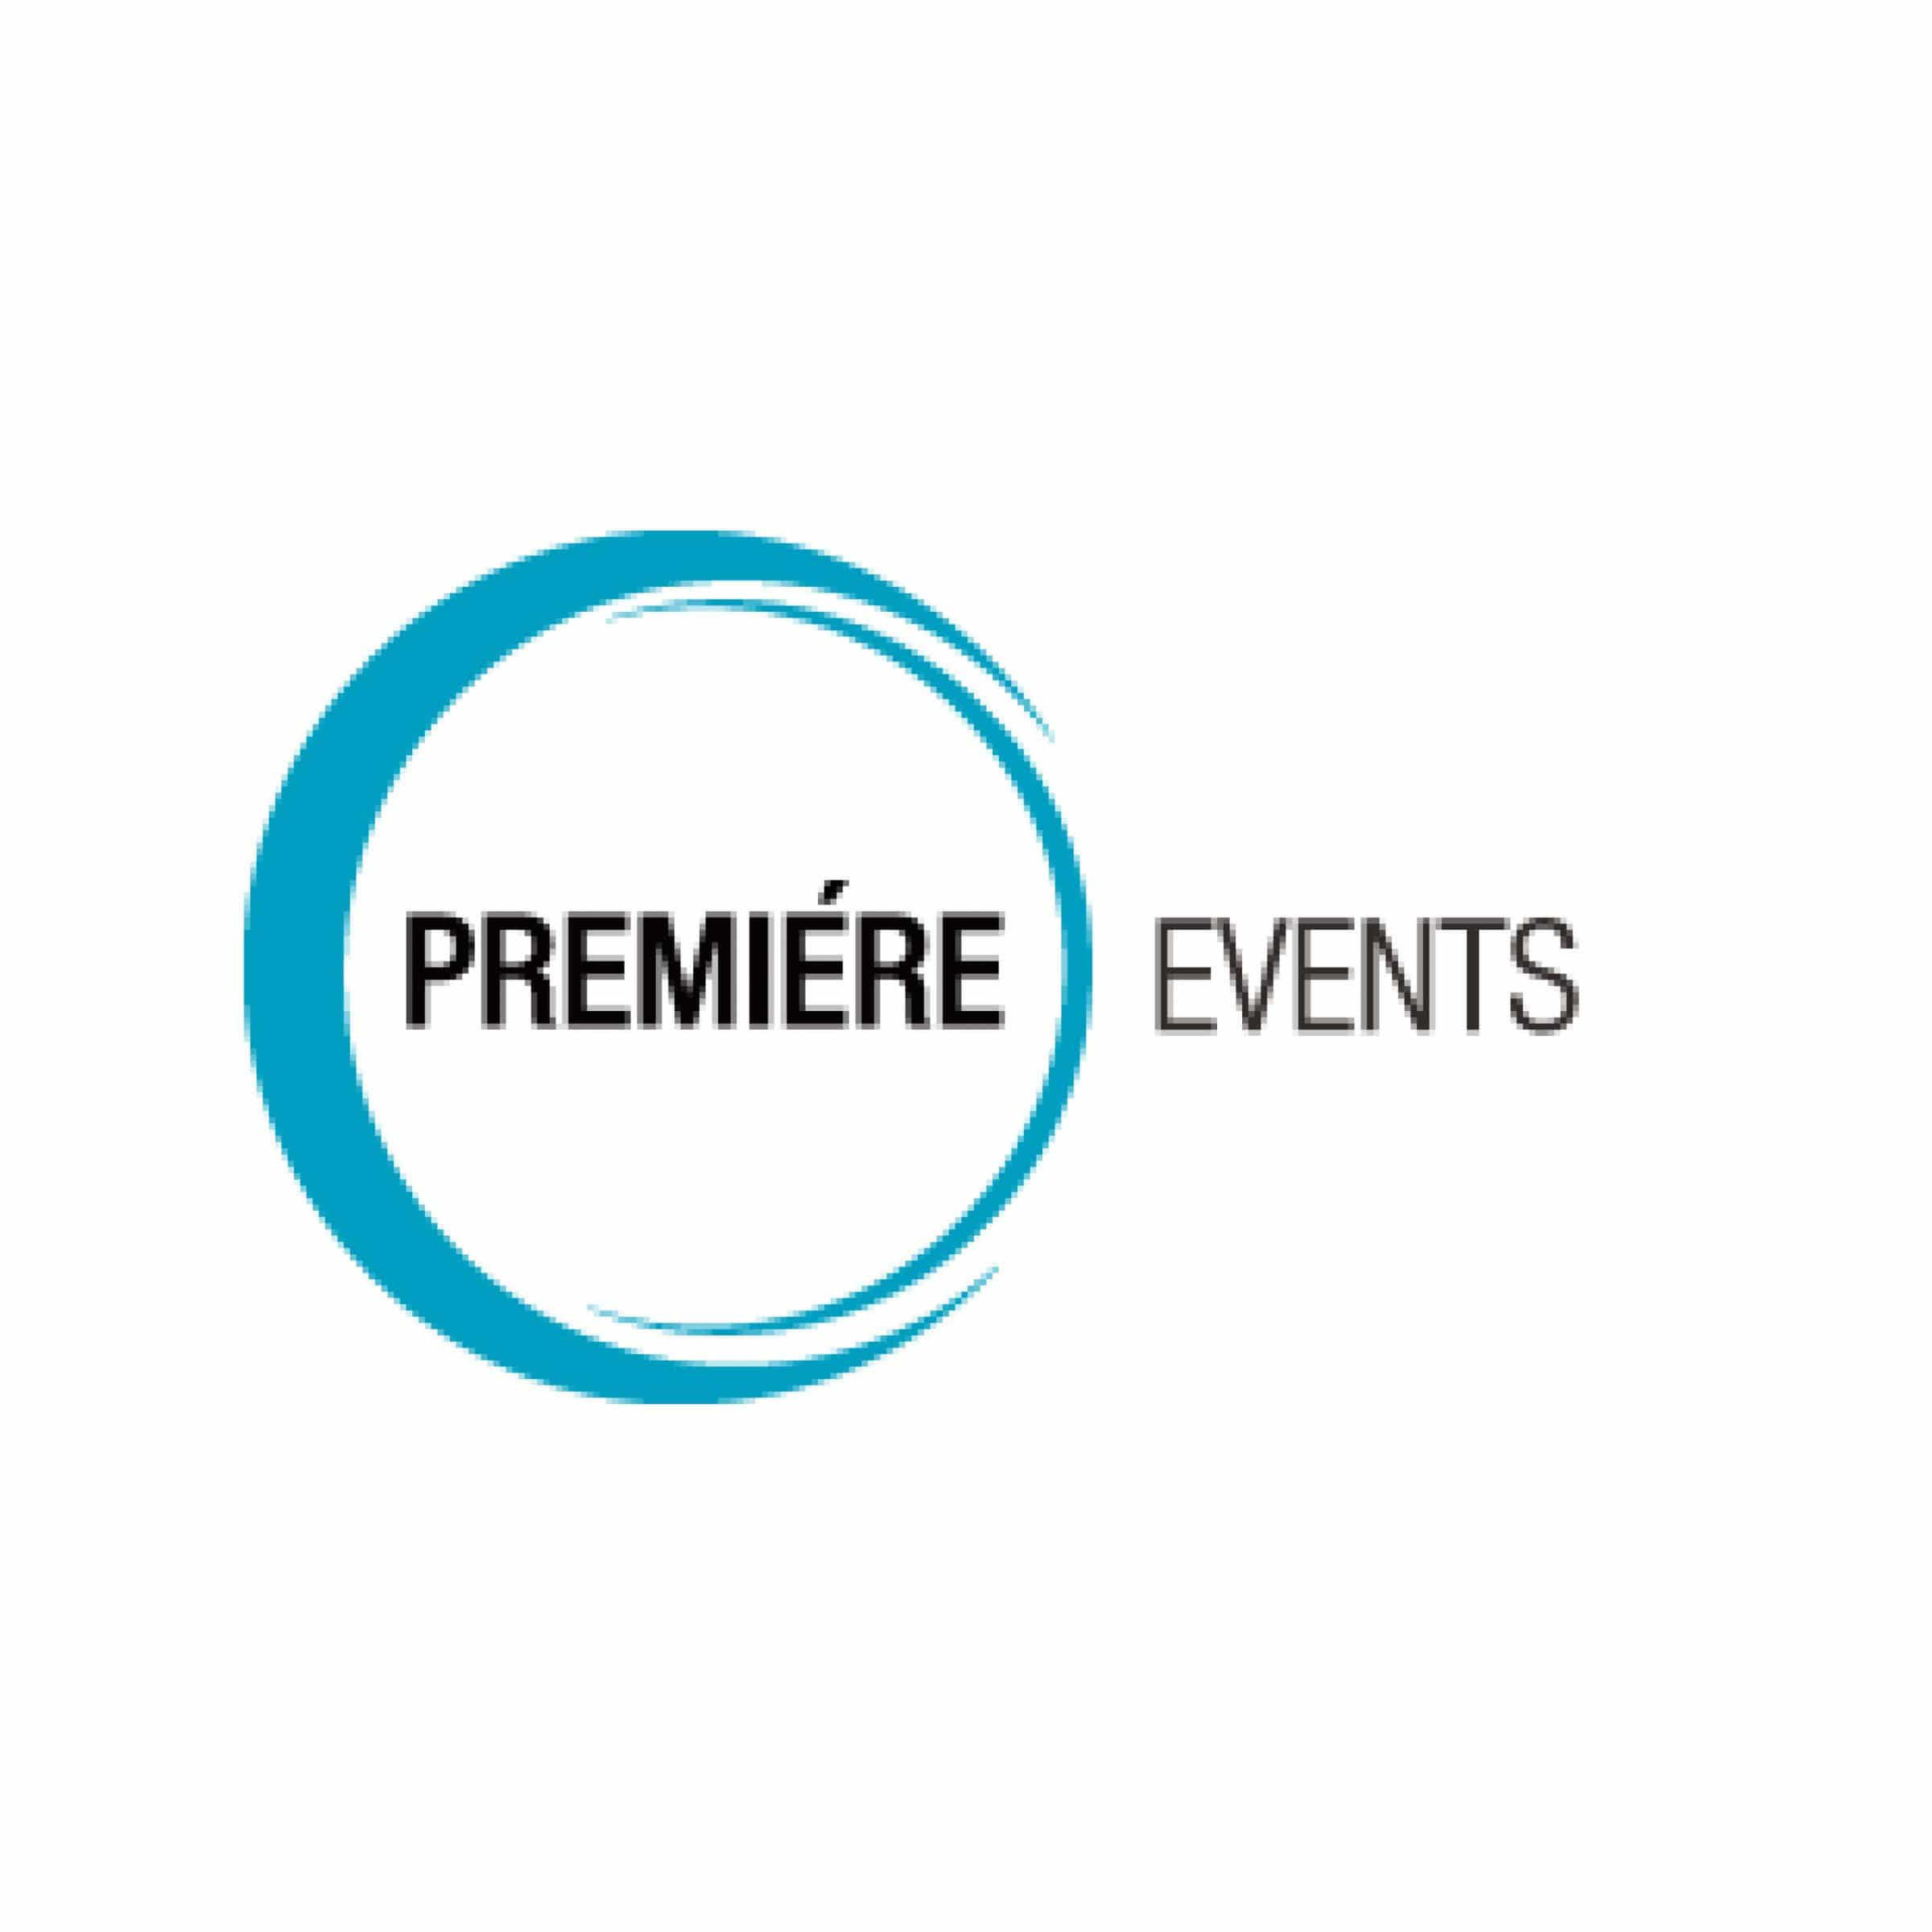 swan river sailing supporter premiere events logo